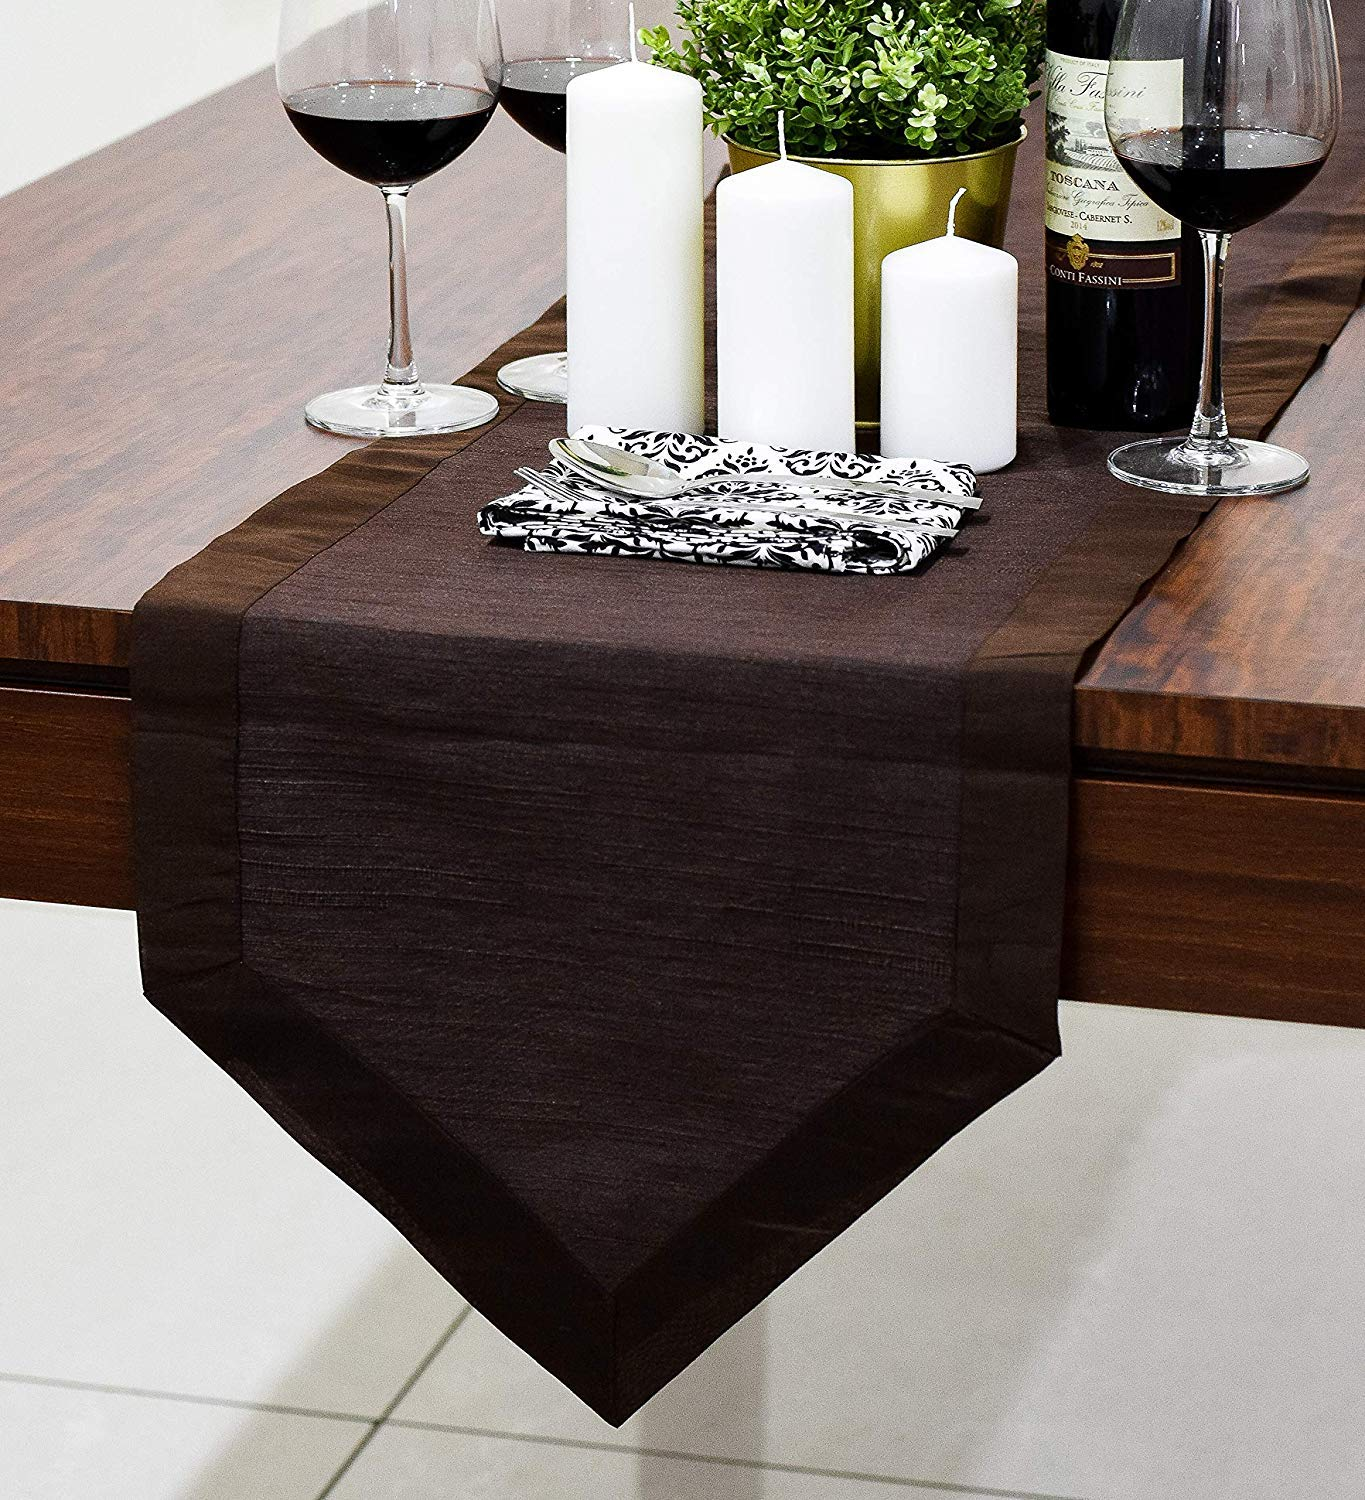 The White Petals Dark Brown Dresser Table Runners (Faux Silk, V-End Border, 14x36 inch, Pack of 1)